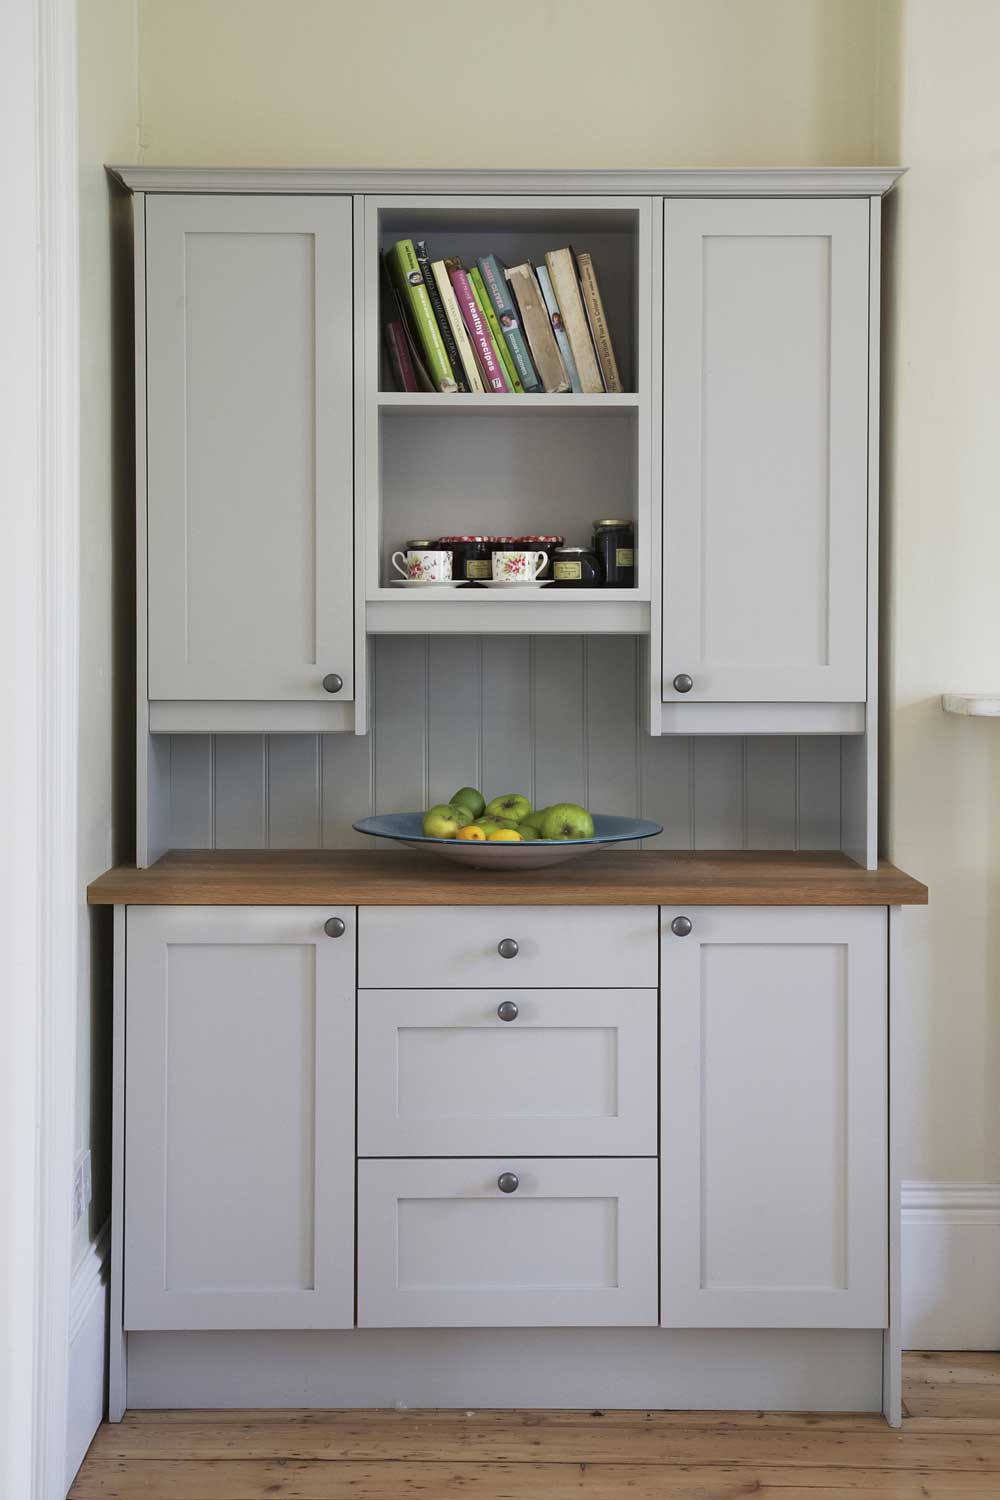 French classic bespoke kitchen cupboard - standalone